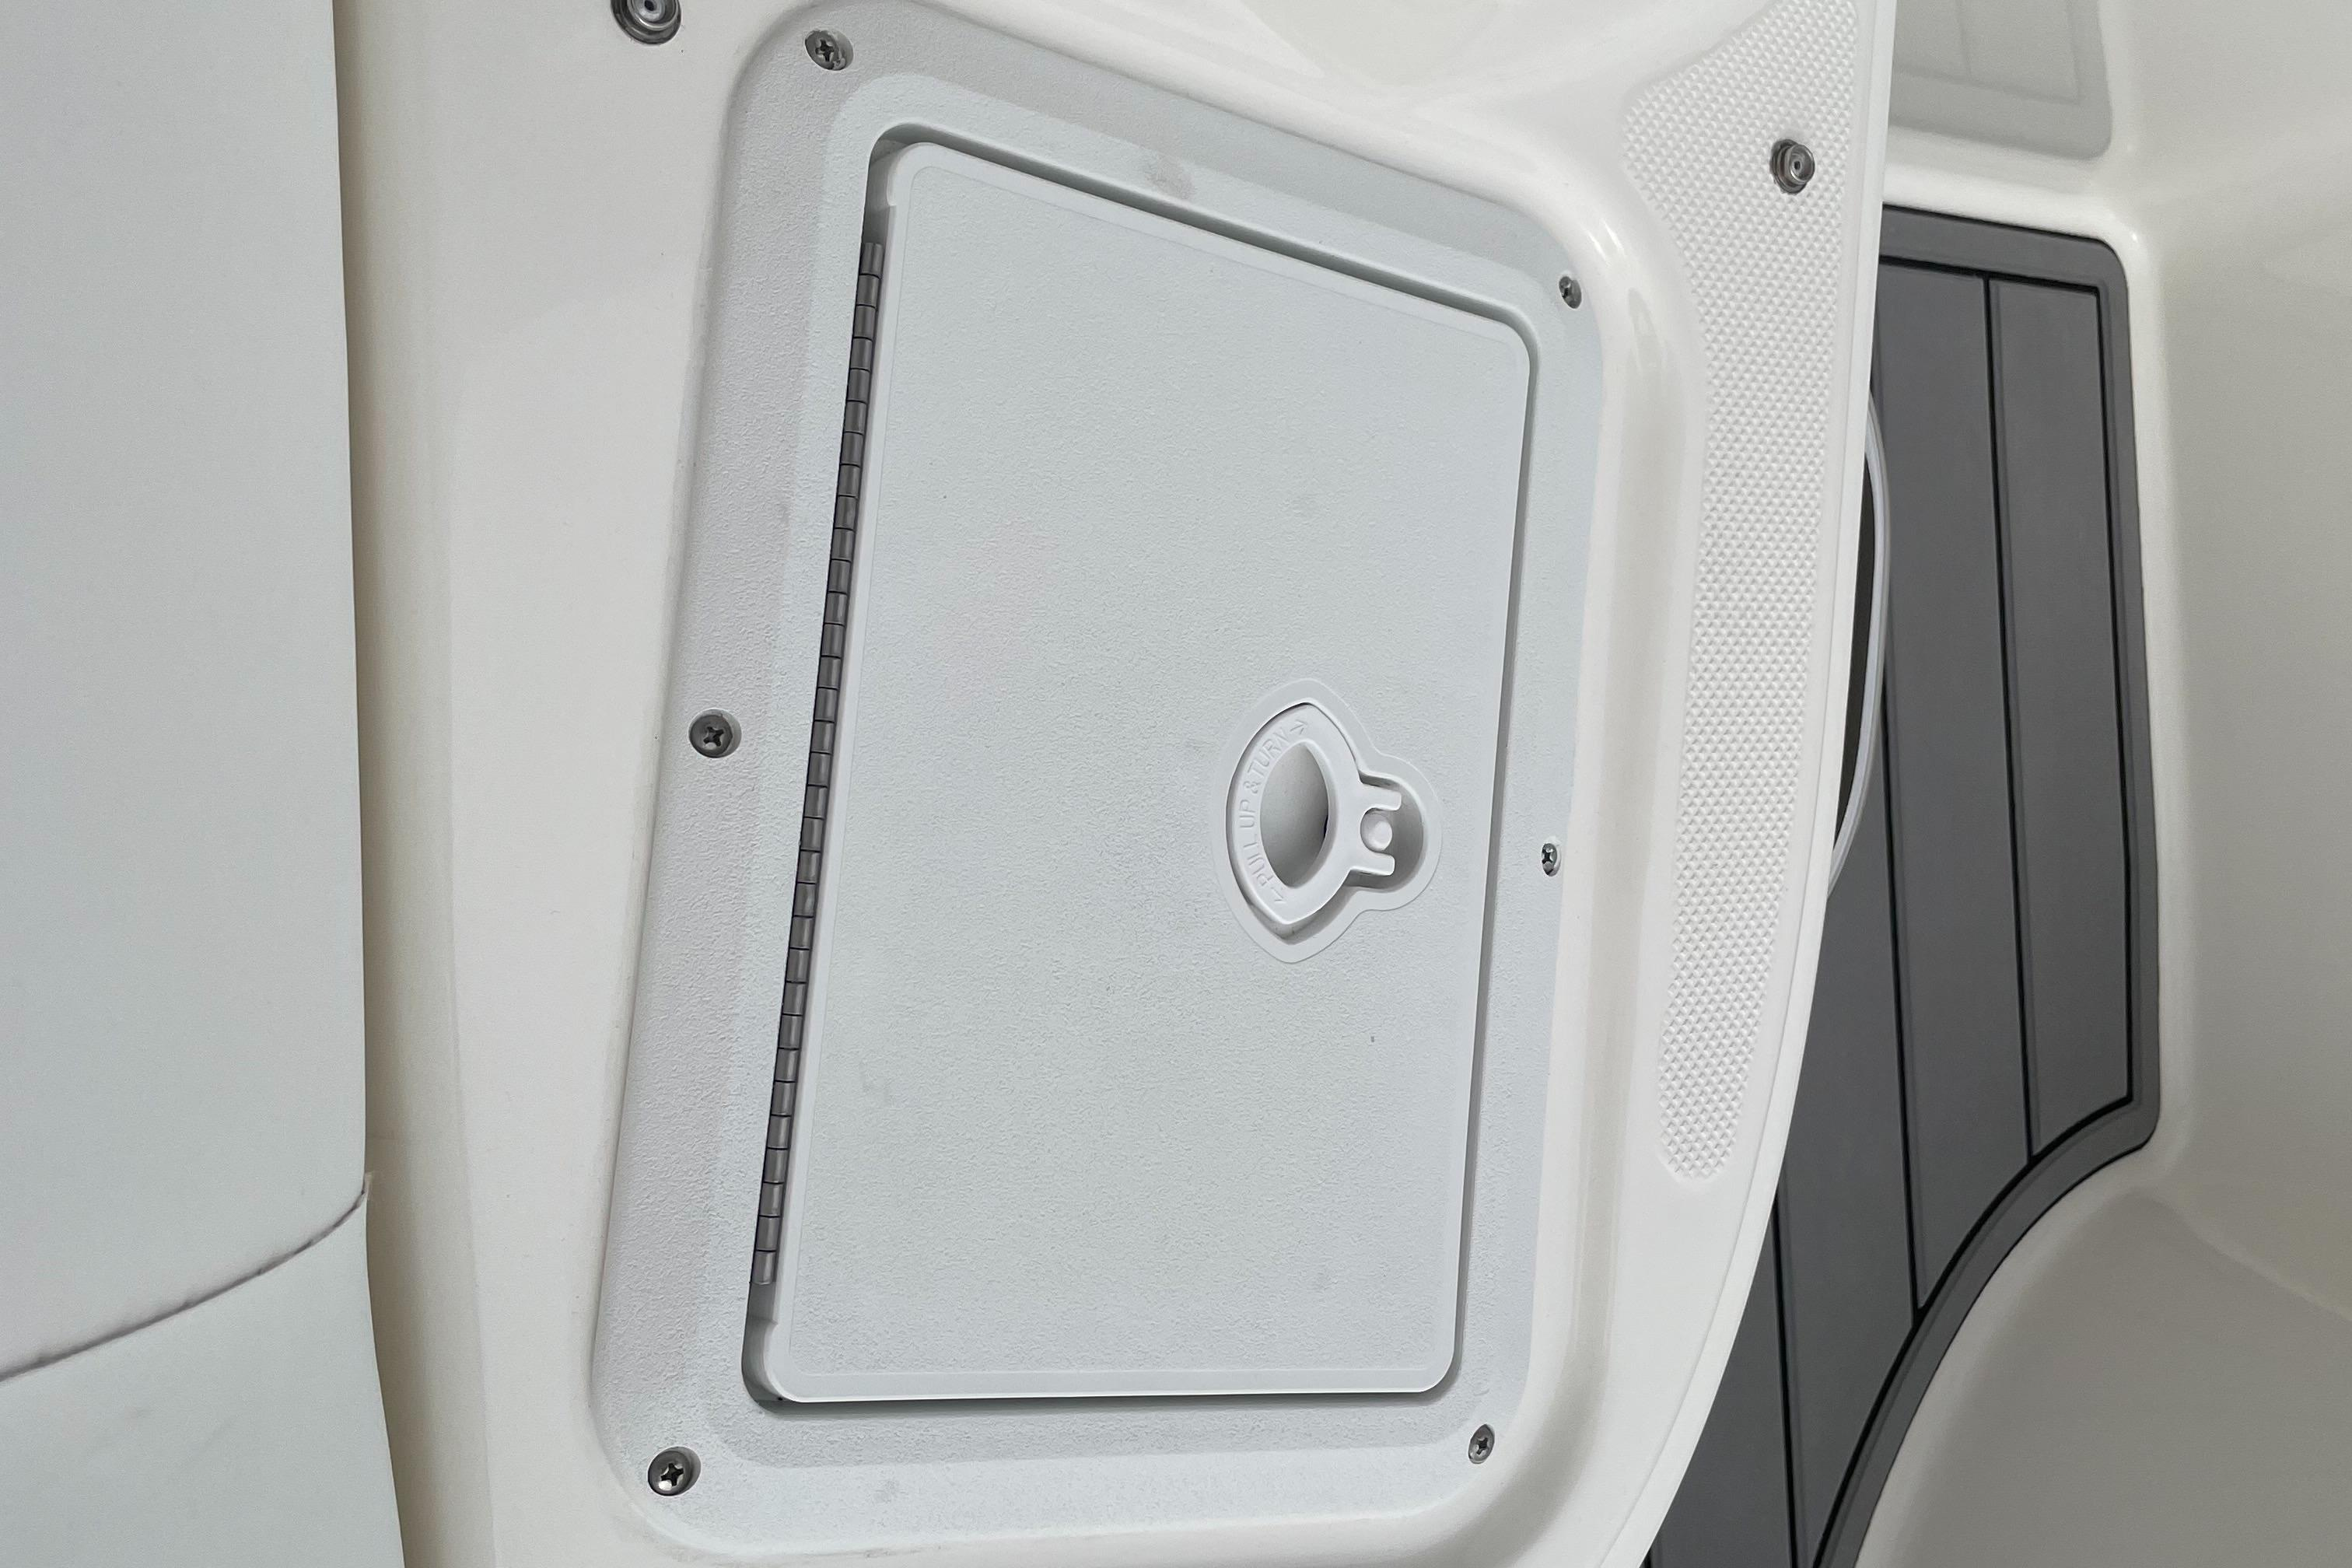 2022 Zodiac Yachtline 440 Deluxe NEO GL Edition 60hp On Order, Image 25